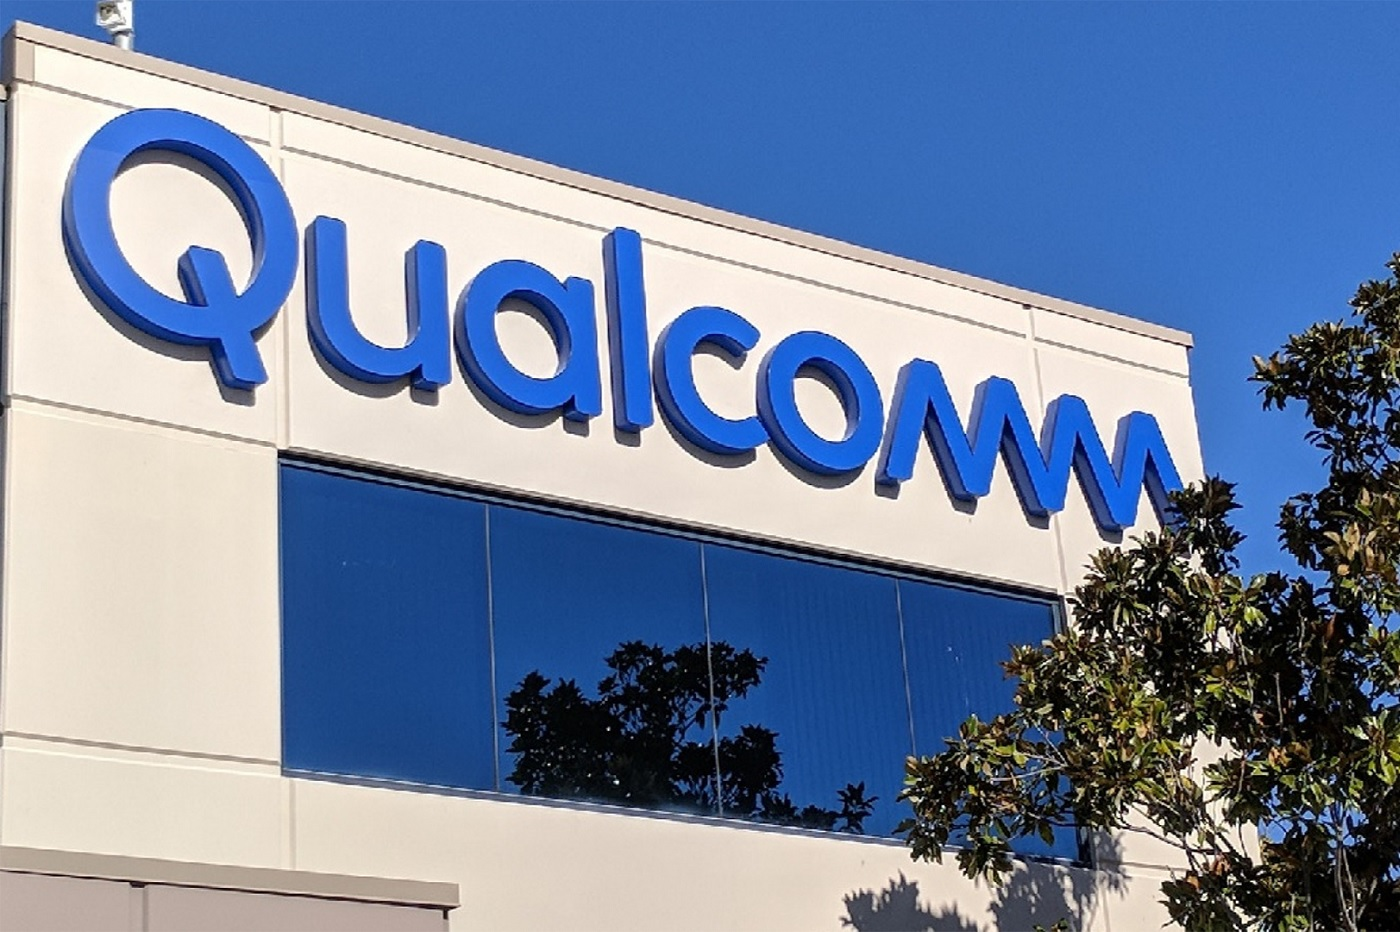 Le logo de Qualcomm